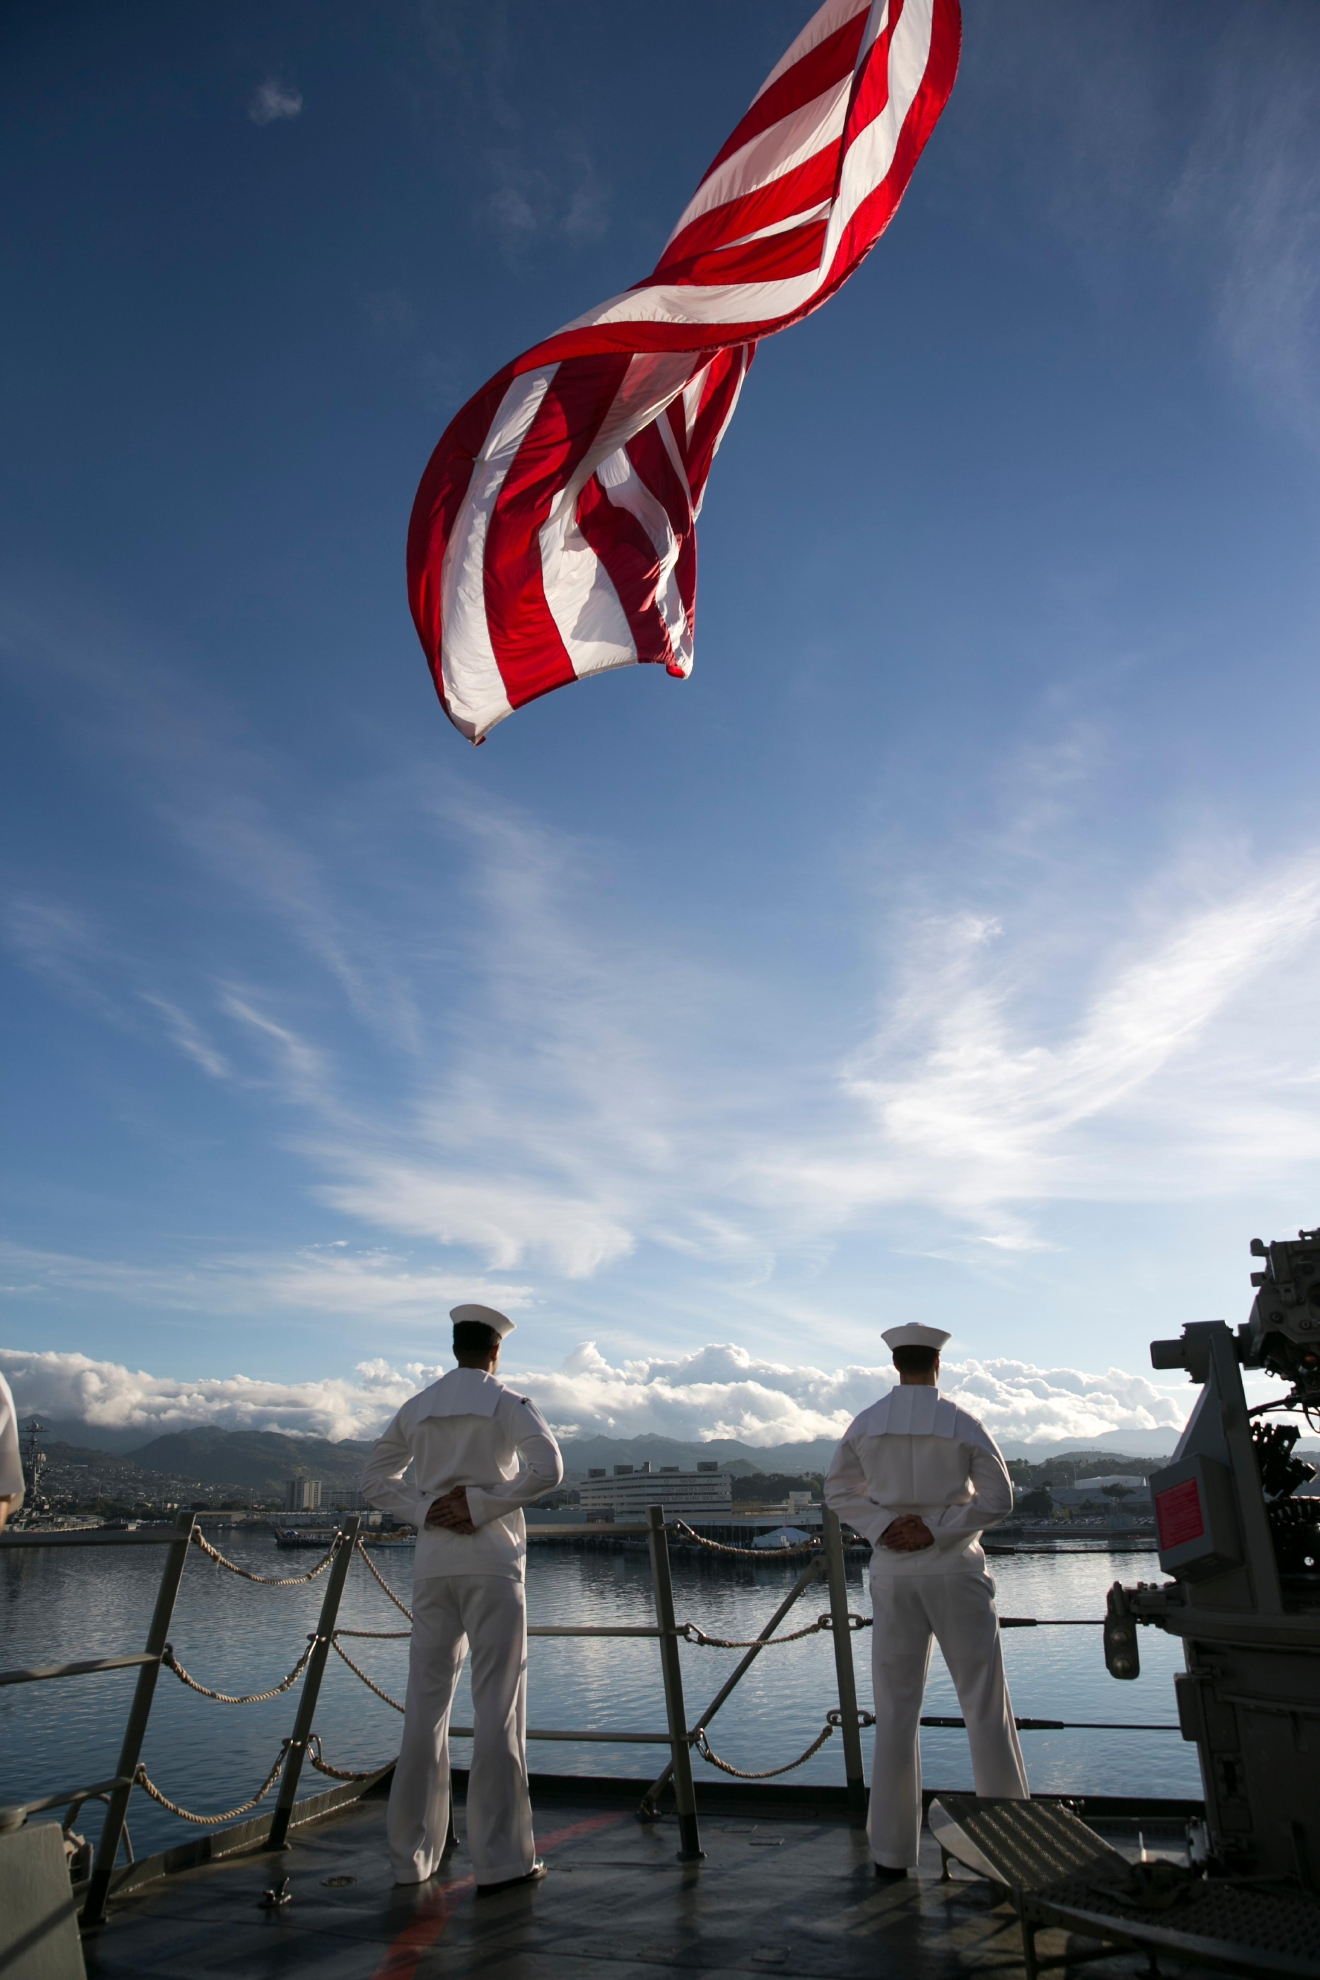 Navy sailors aboard the USS Halsey stand at parade rest as the ship passes by Kilo Pier at Pearl Harbor, Wednesday, Dec. 7, 2016, in Honolulu.  Survivors of the Japanese attack, dignitaries and ordinary citizens attended a ceremony at Kilo Pier to commemorate the 75th anniversary of the Japanese attack on the naval harbor.  (AP Photo/Marco Garcia)